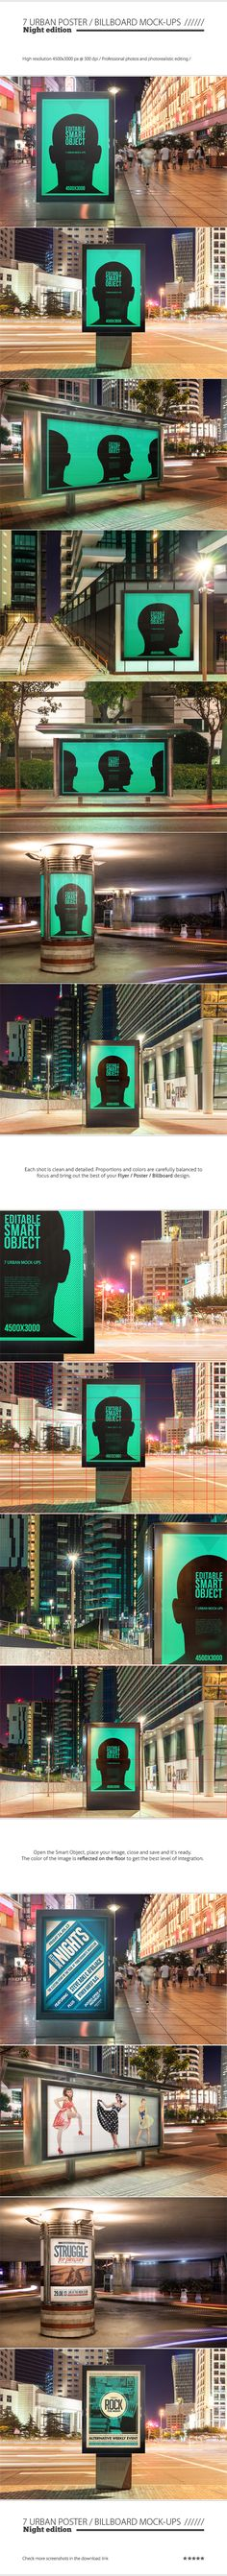 Urban Flyer / Poster / Billboard MockUp - Night Edition by Nuwan Panditha, via…